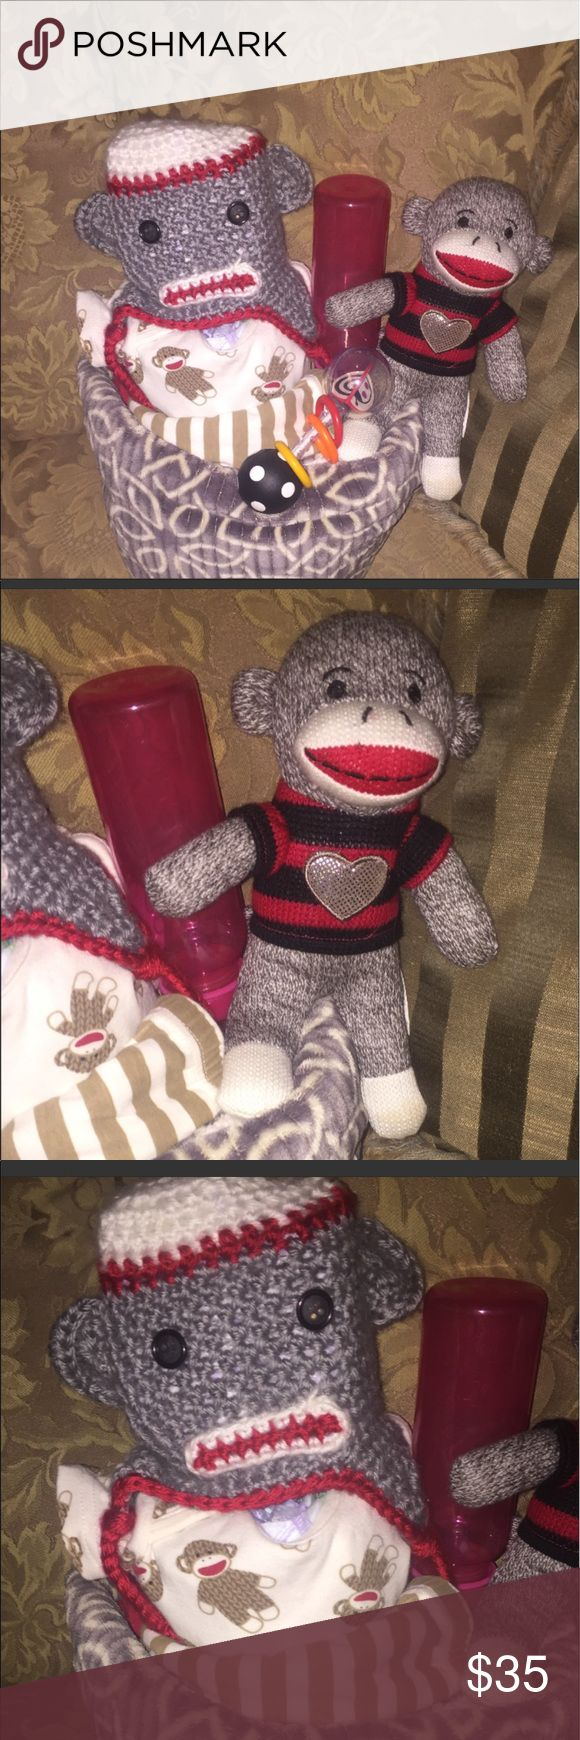 Sock monkey unisex diaper cake Comes with luvs or huggie diapers Sock monkey onesie n pants Sock monkey knitted hat  Stuff sock monkey Blanket  Bottle Rattle  Will be wrap in plastic with ribbon I can also do lamps and switchplate covers in this theme Accessories